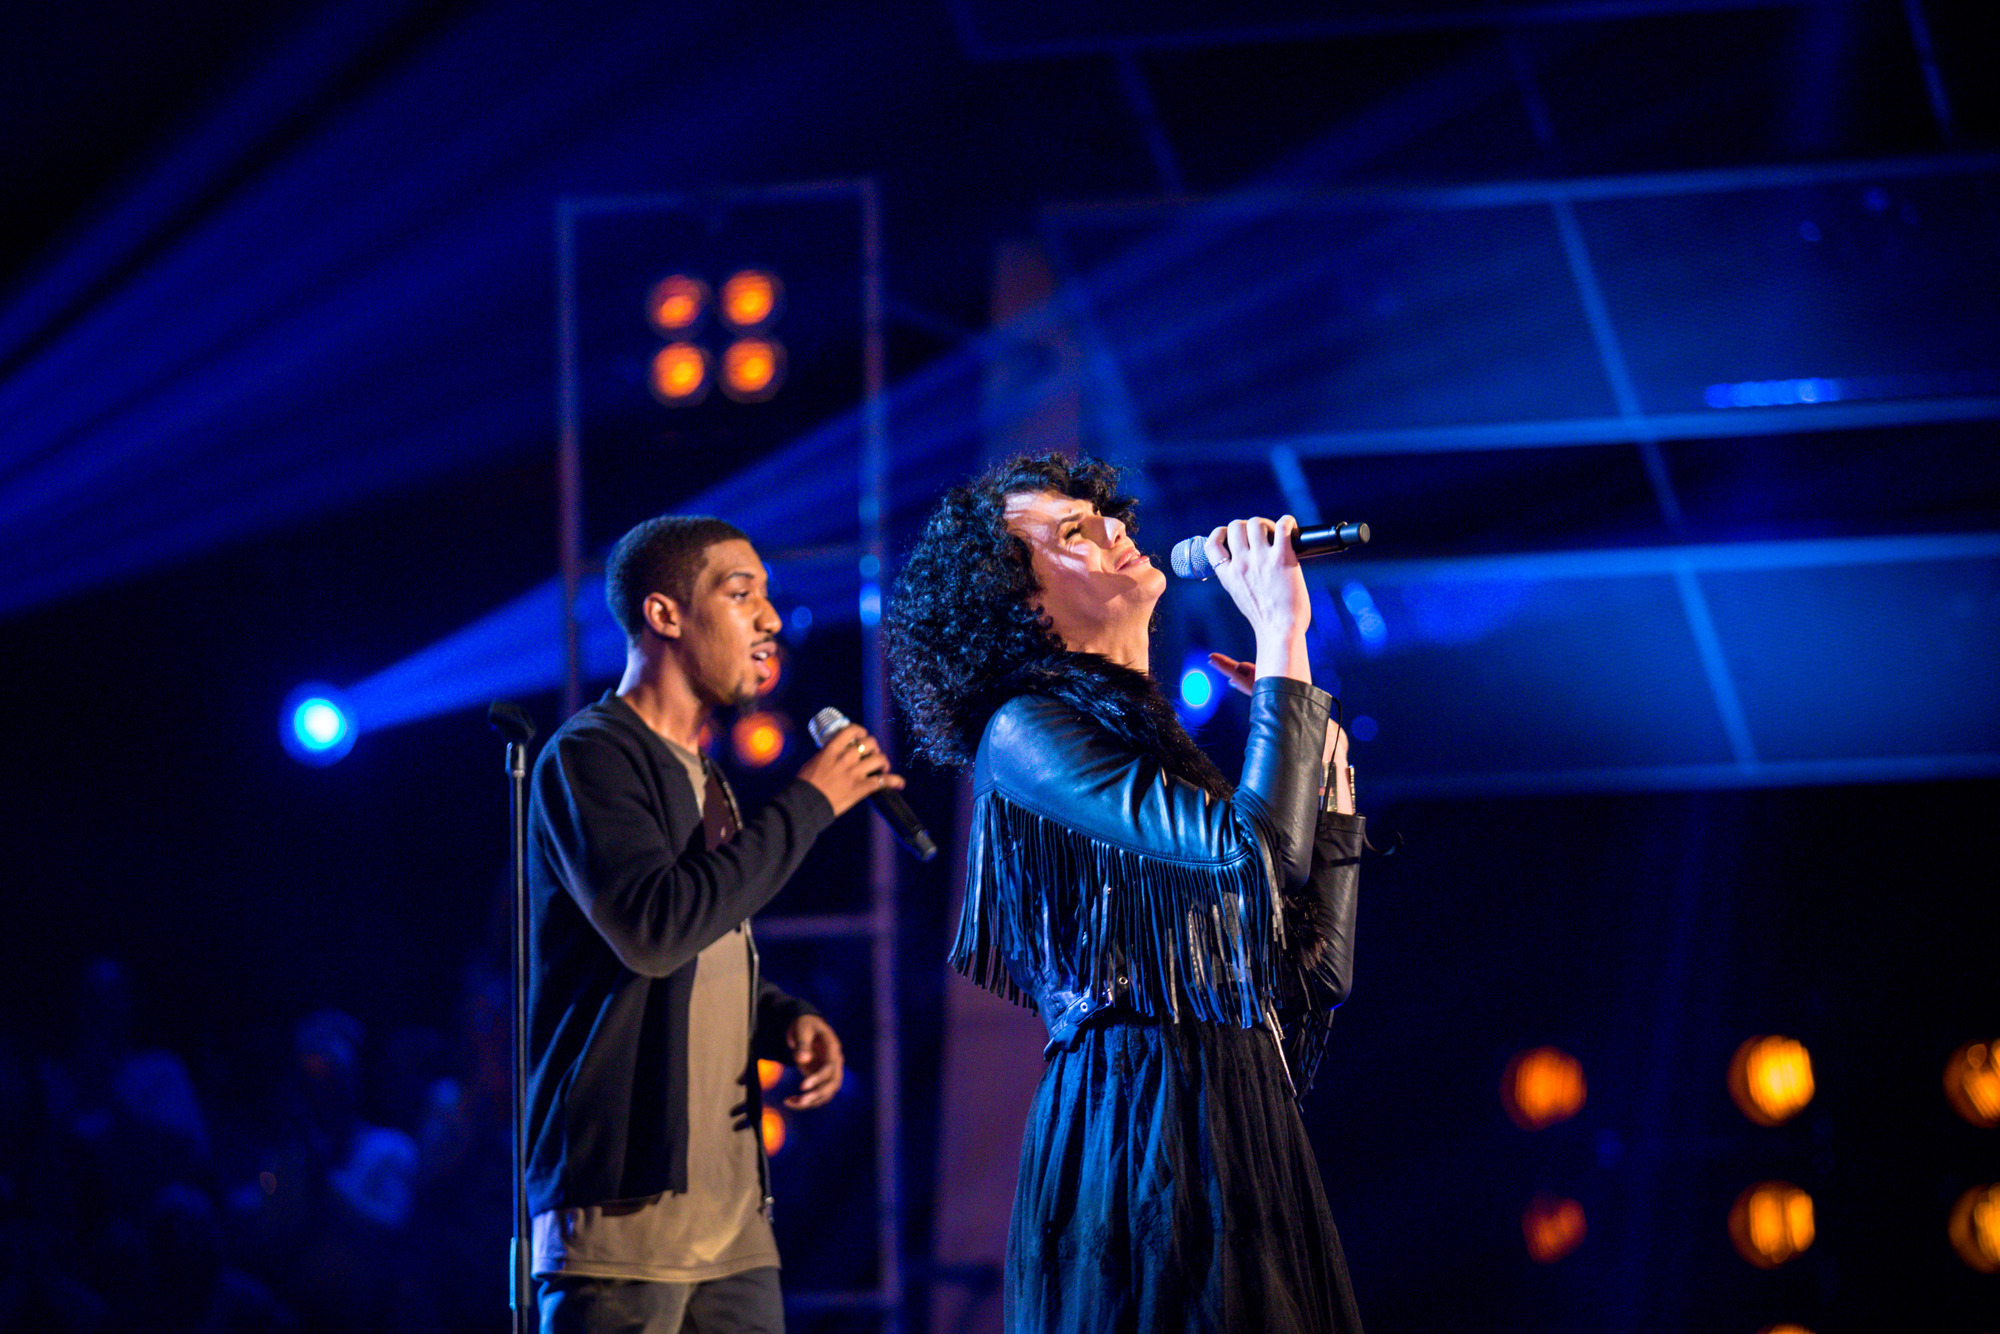 The Voice 2016: 13 things we noticed during the first battle round